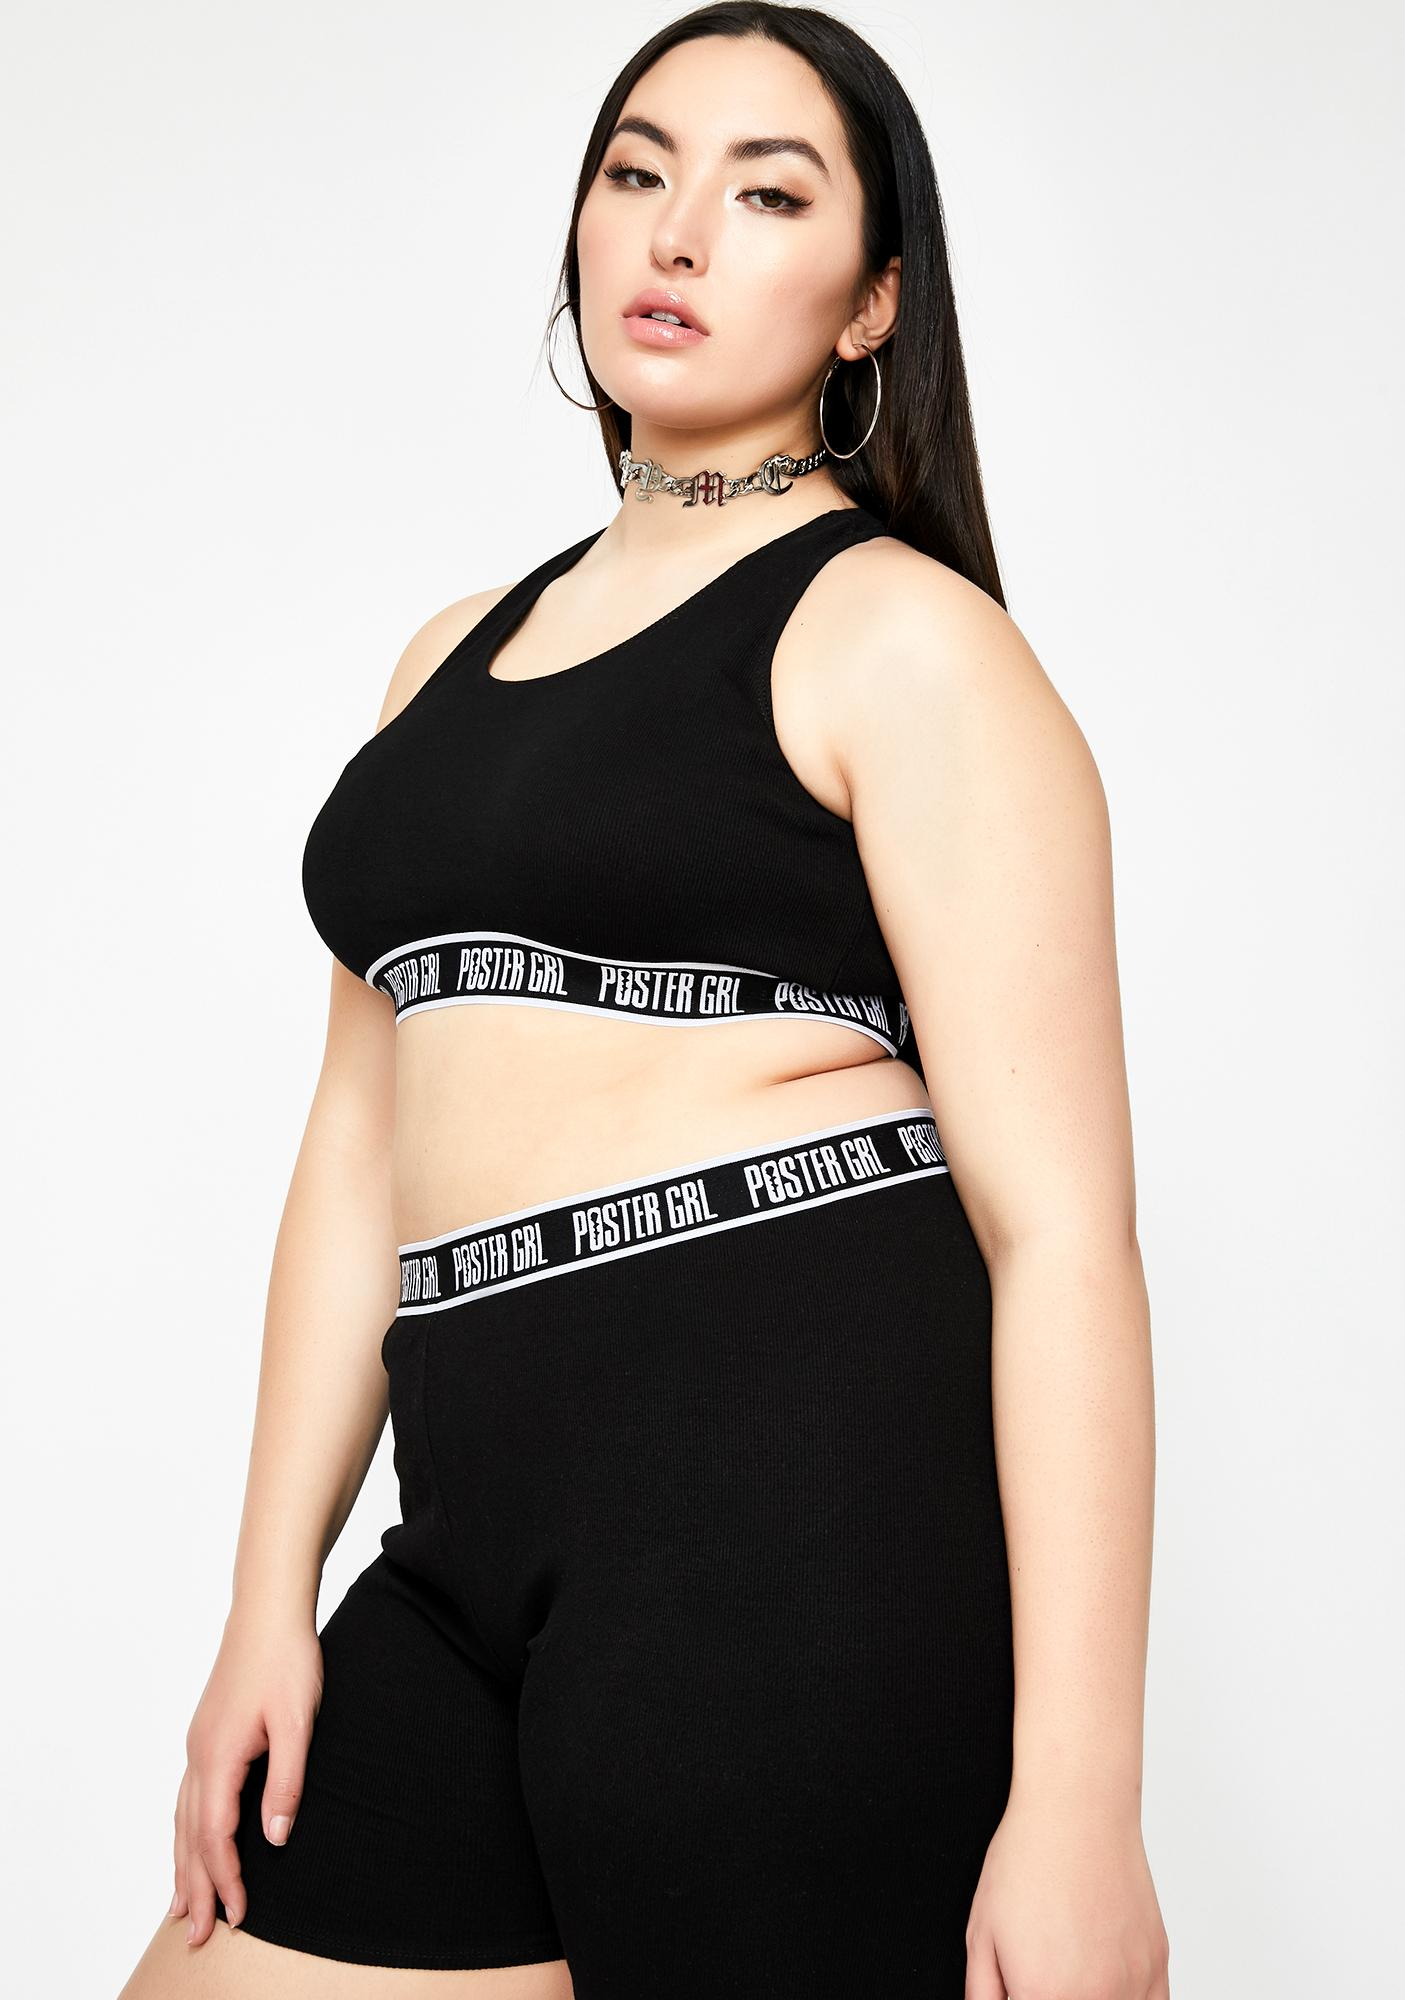 Poster Grl Night Go Boss Mode Sports Bra